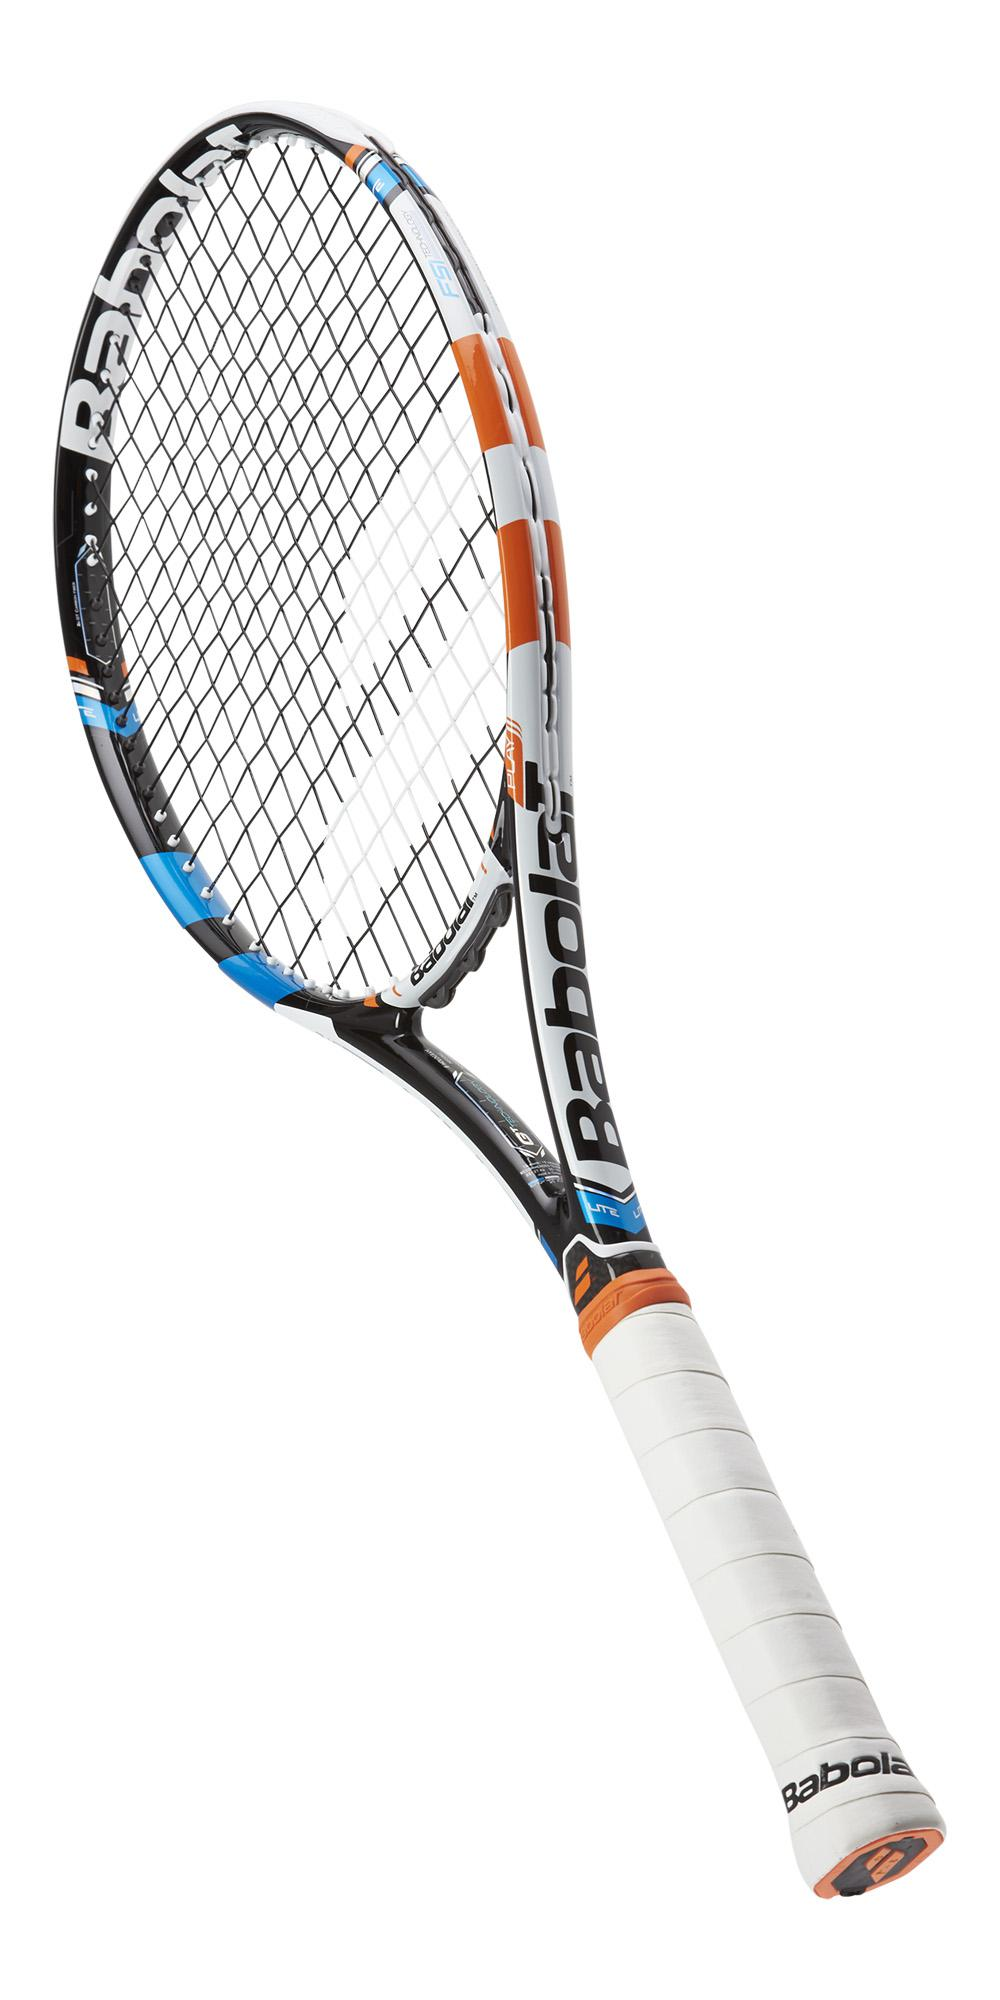 Babolat play pure drive lite tennis racket - Babolat pure drive lite tennis racquet ...